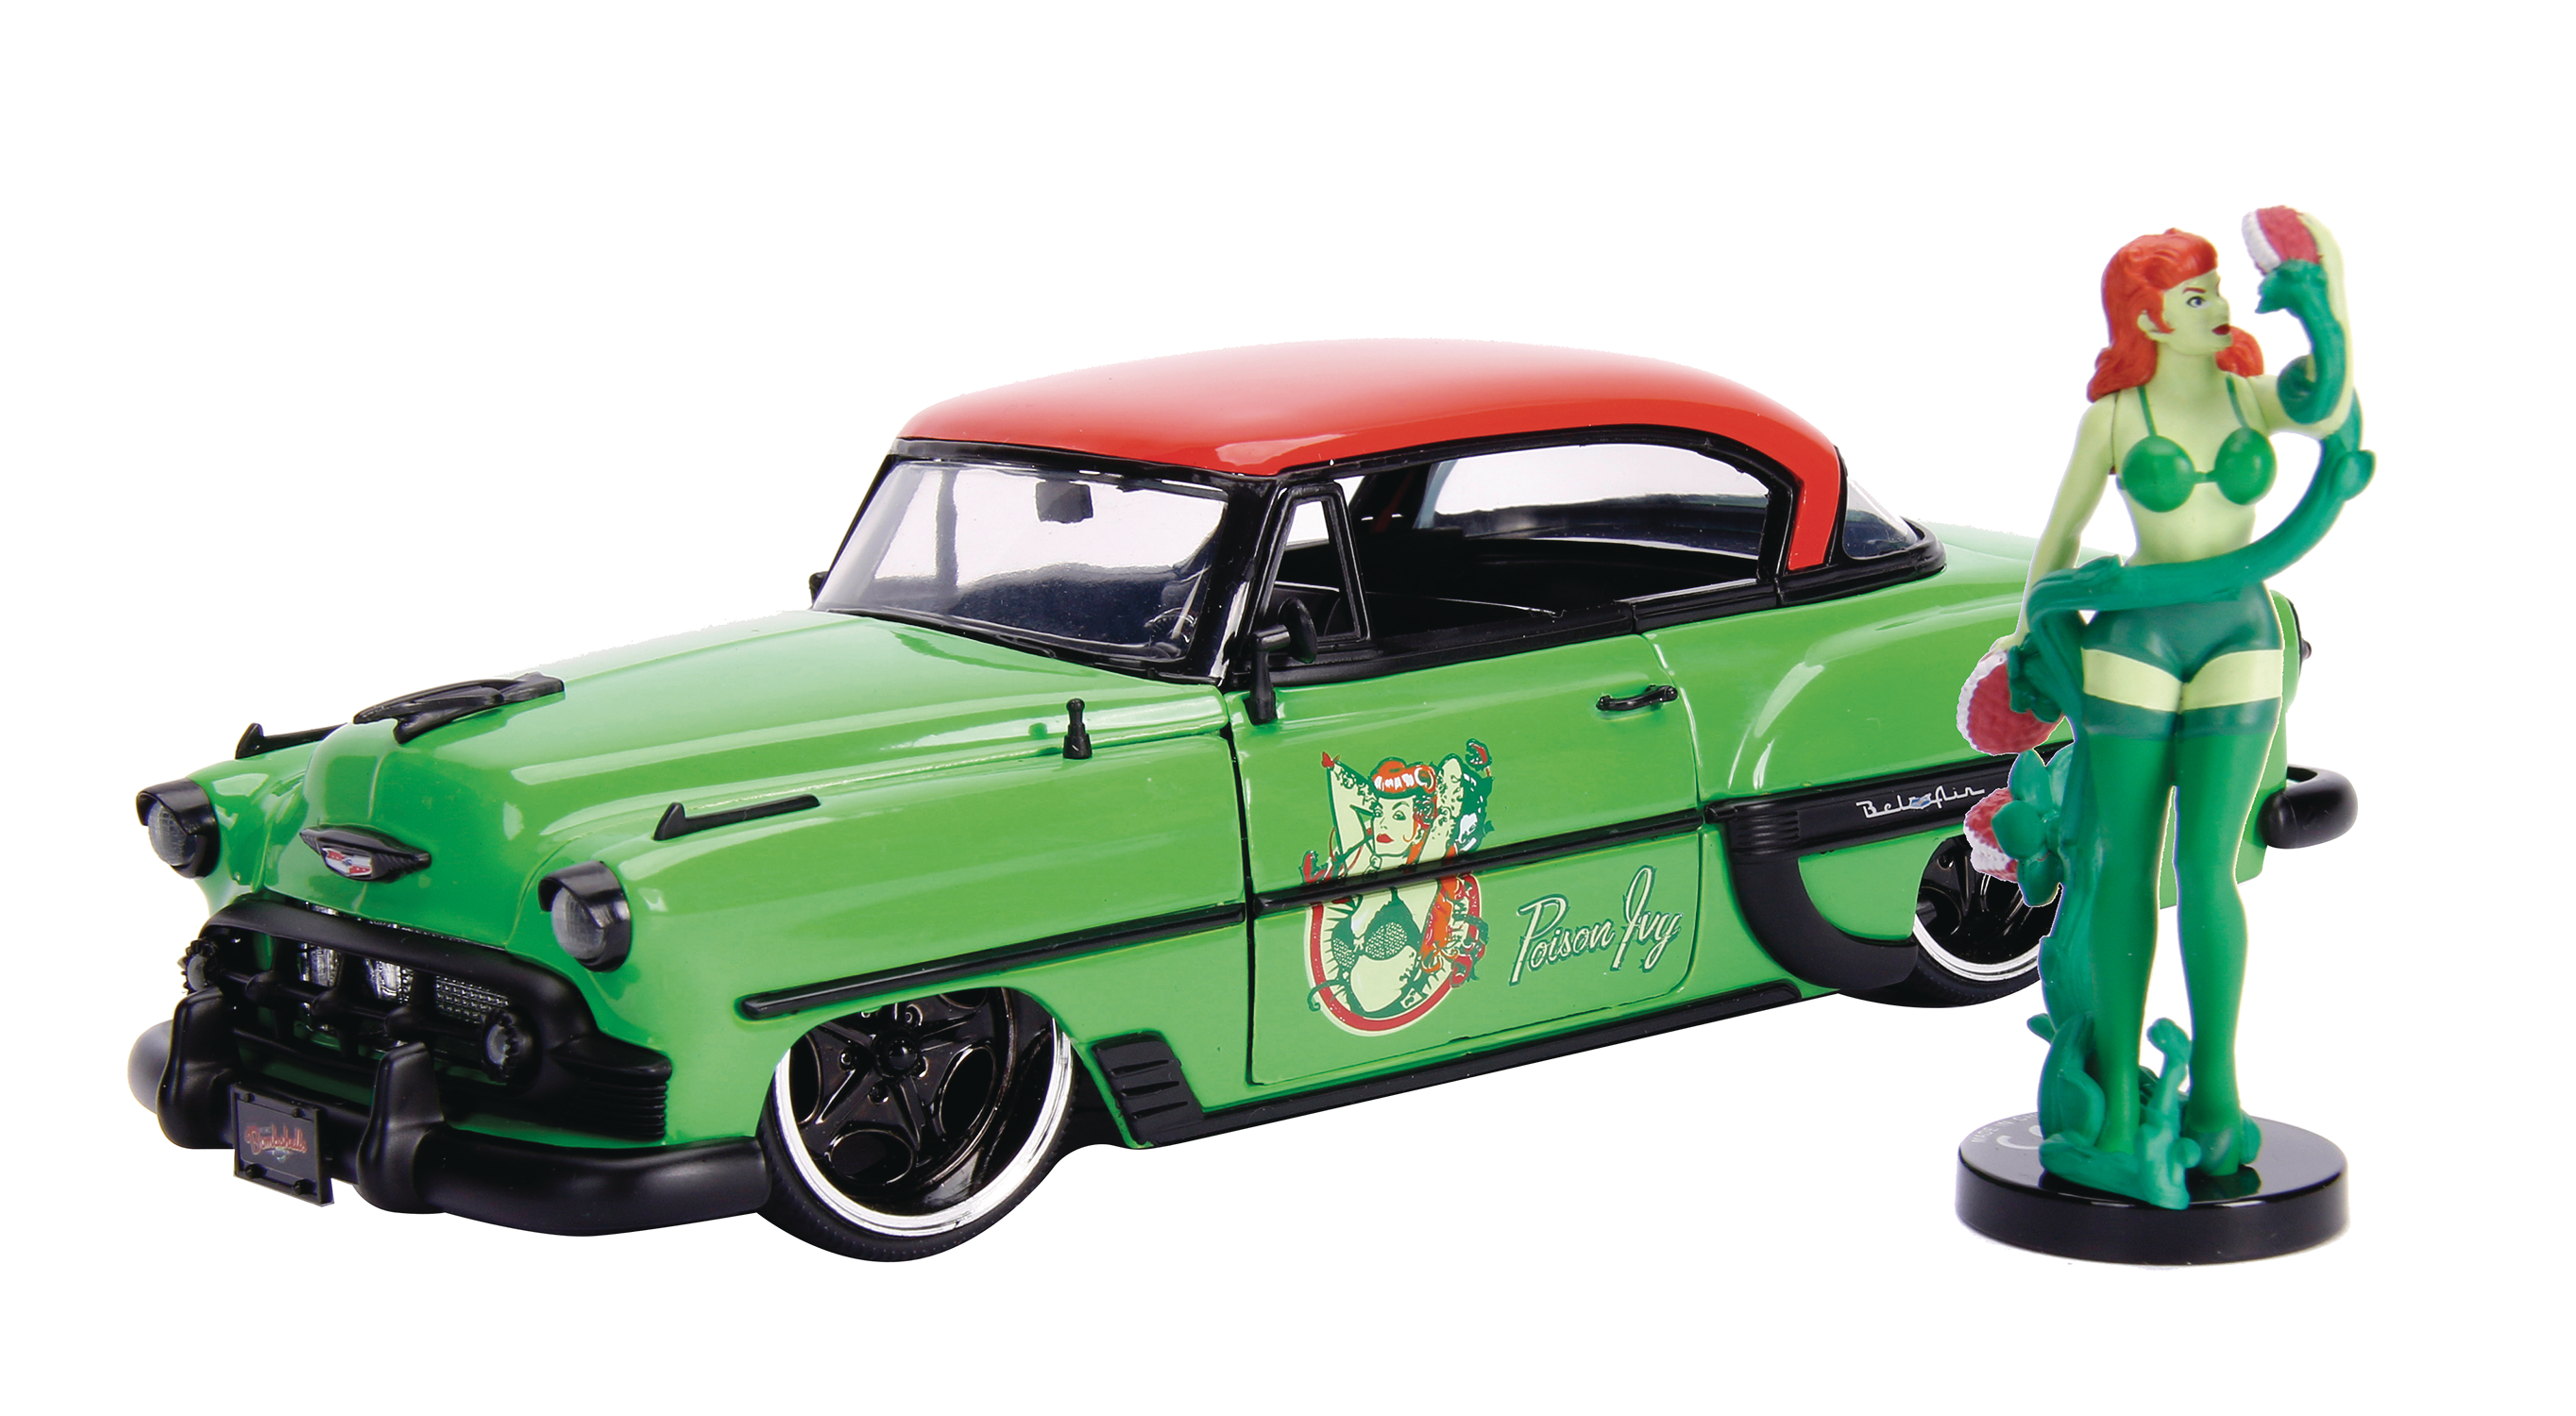 DC BOMBSHELLS 53 CHEVY BEL AIR W/ POISON IVY 1/24 VEHICLE (N